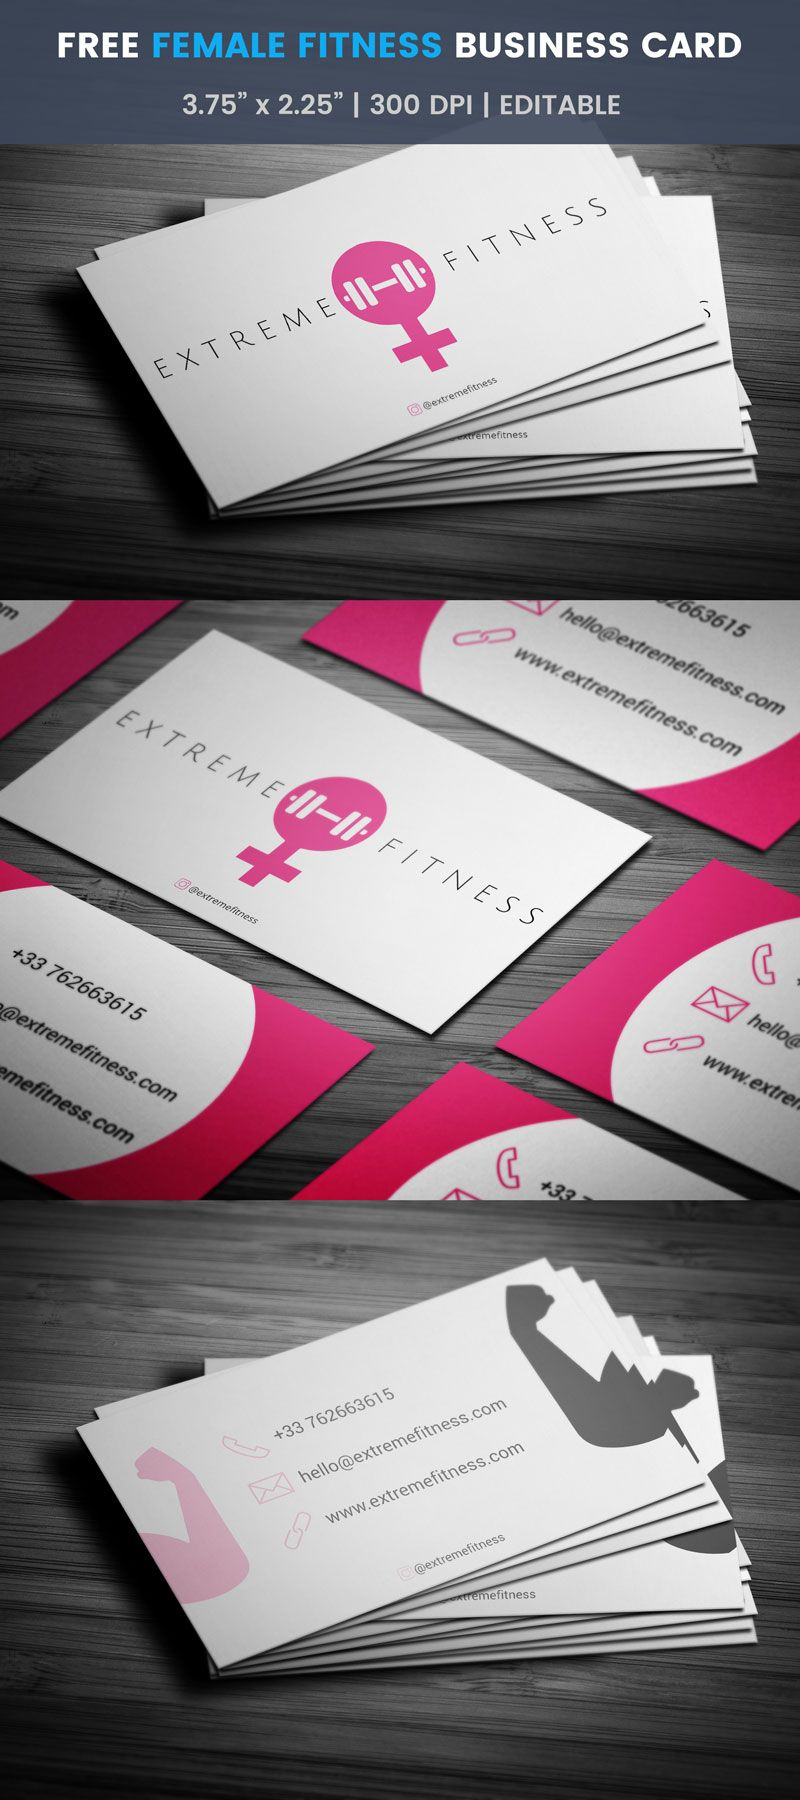 Female Fitness Business Card - Full Preview   Free Business Card ...